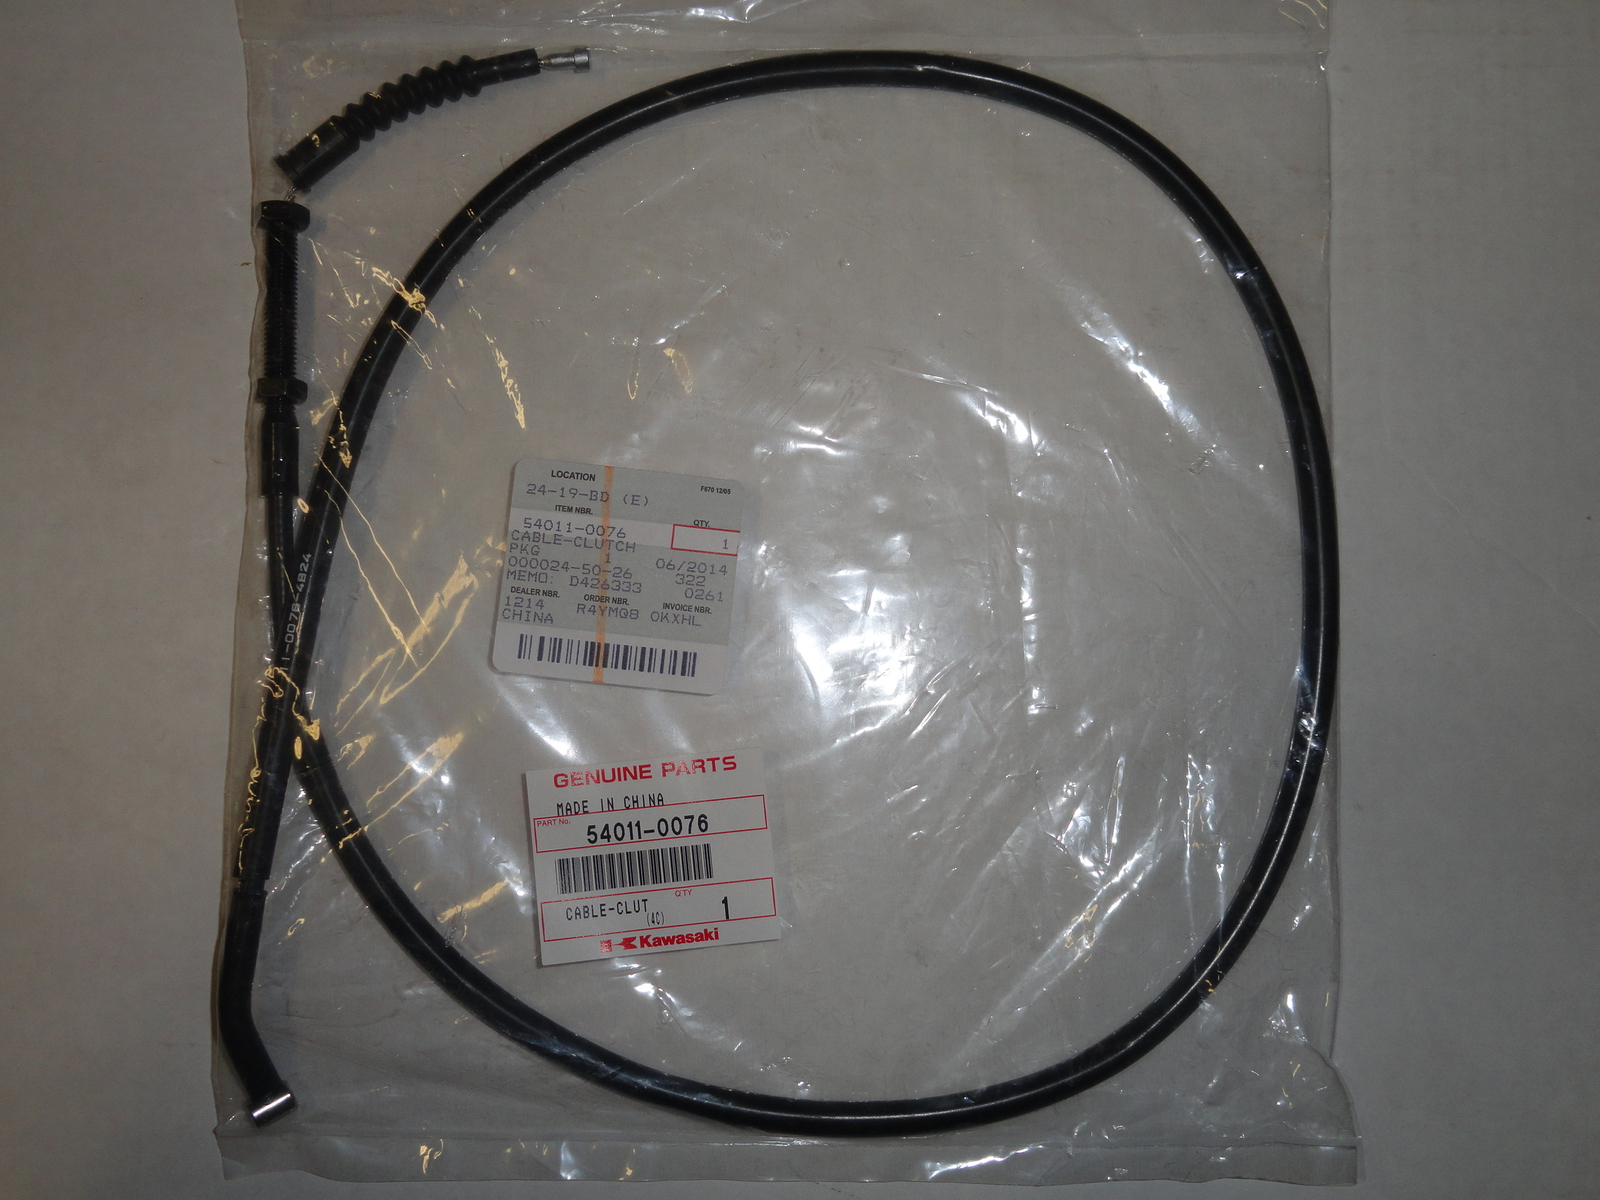 Clutch Cable Oem Ninja Zx600 R Zx 600 R Zx6 and 50 similar items on